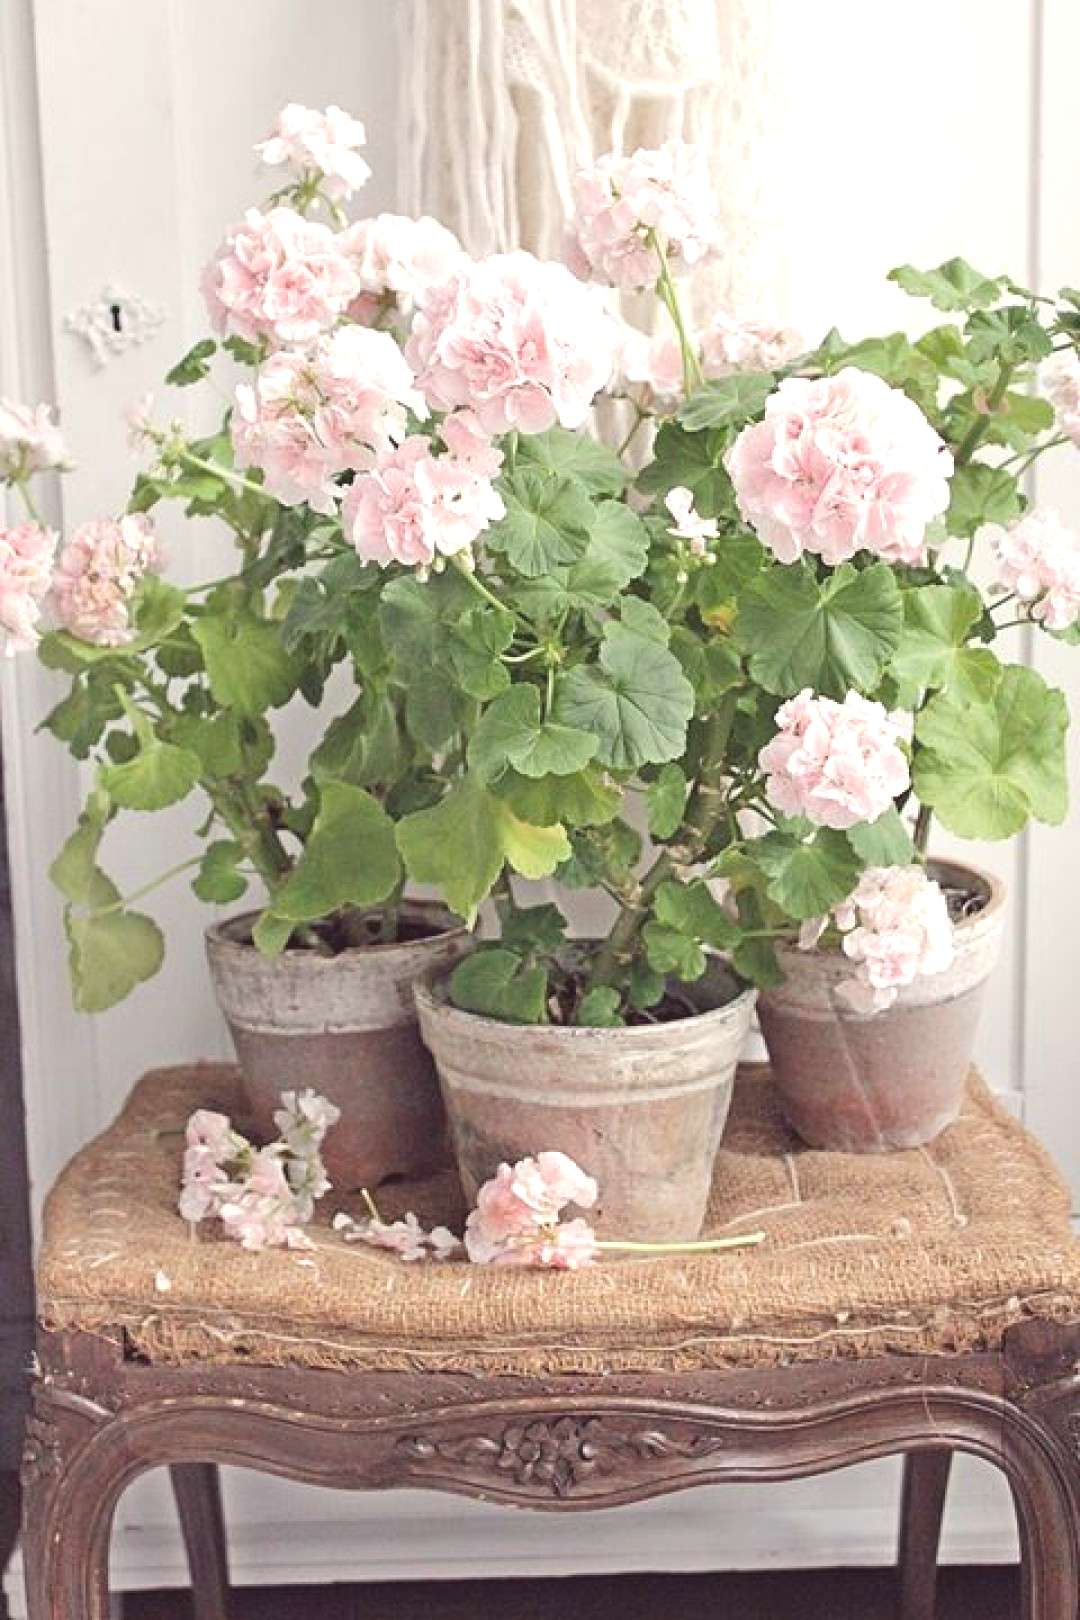 Décor Inspiration: Falling in Love with Geraniums :: This Is Glamorous